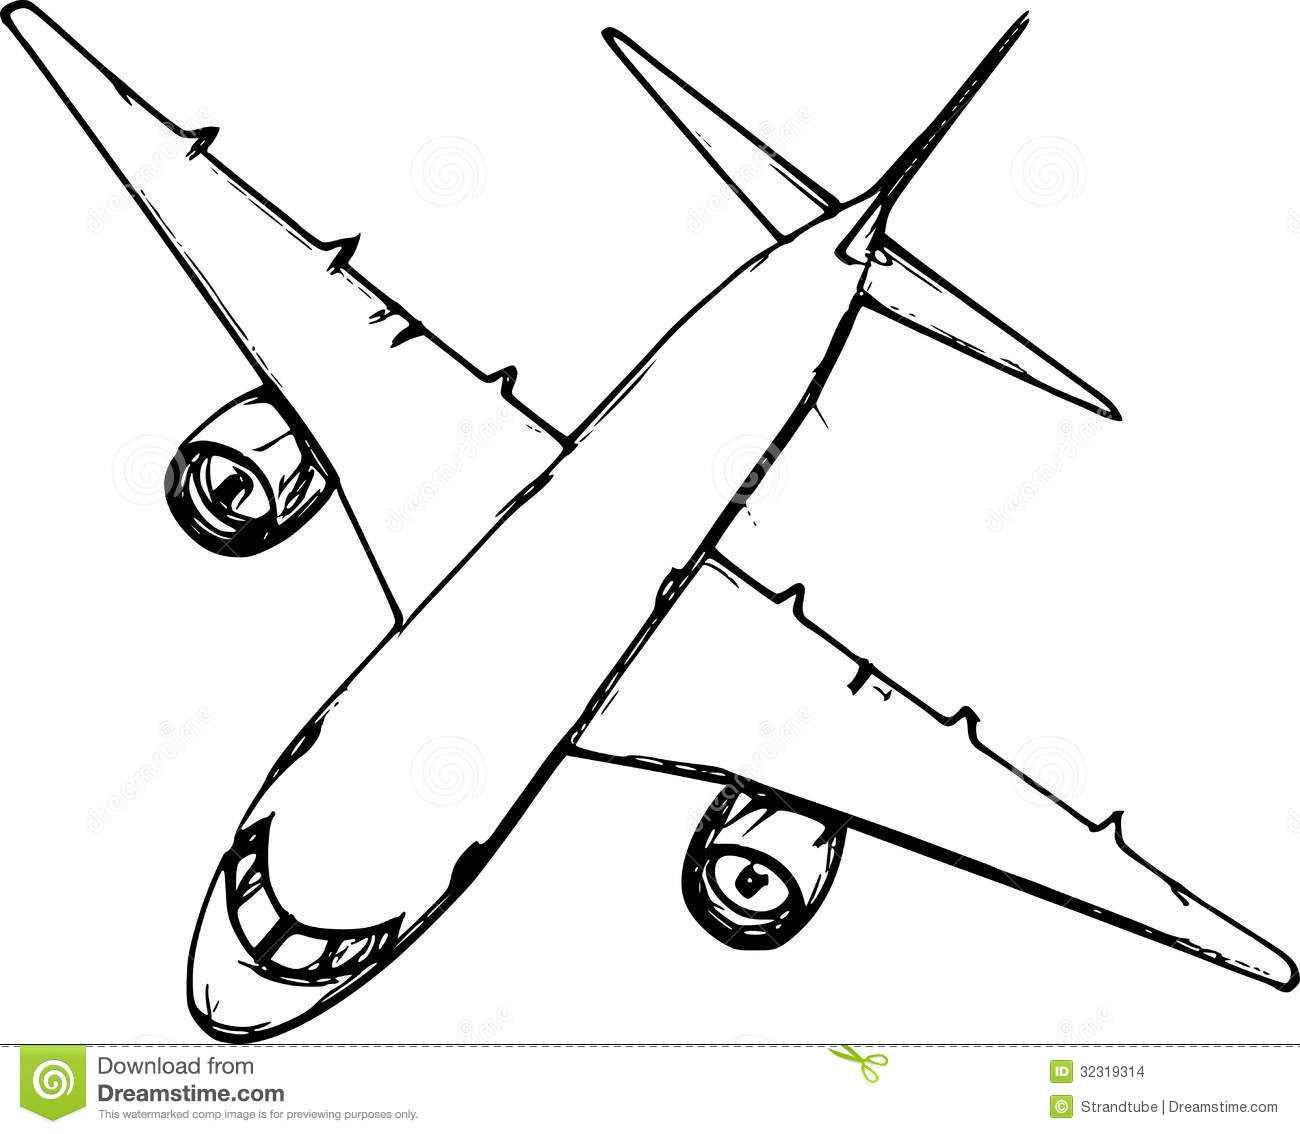 1300x1134 Simple Airplane Outline Drawings Sketch Coloring Page, Simple